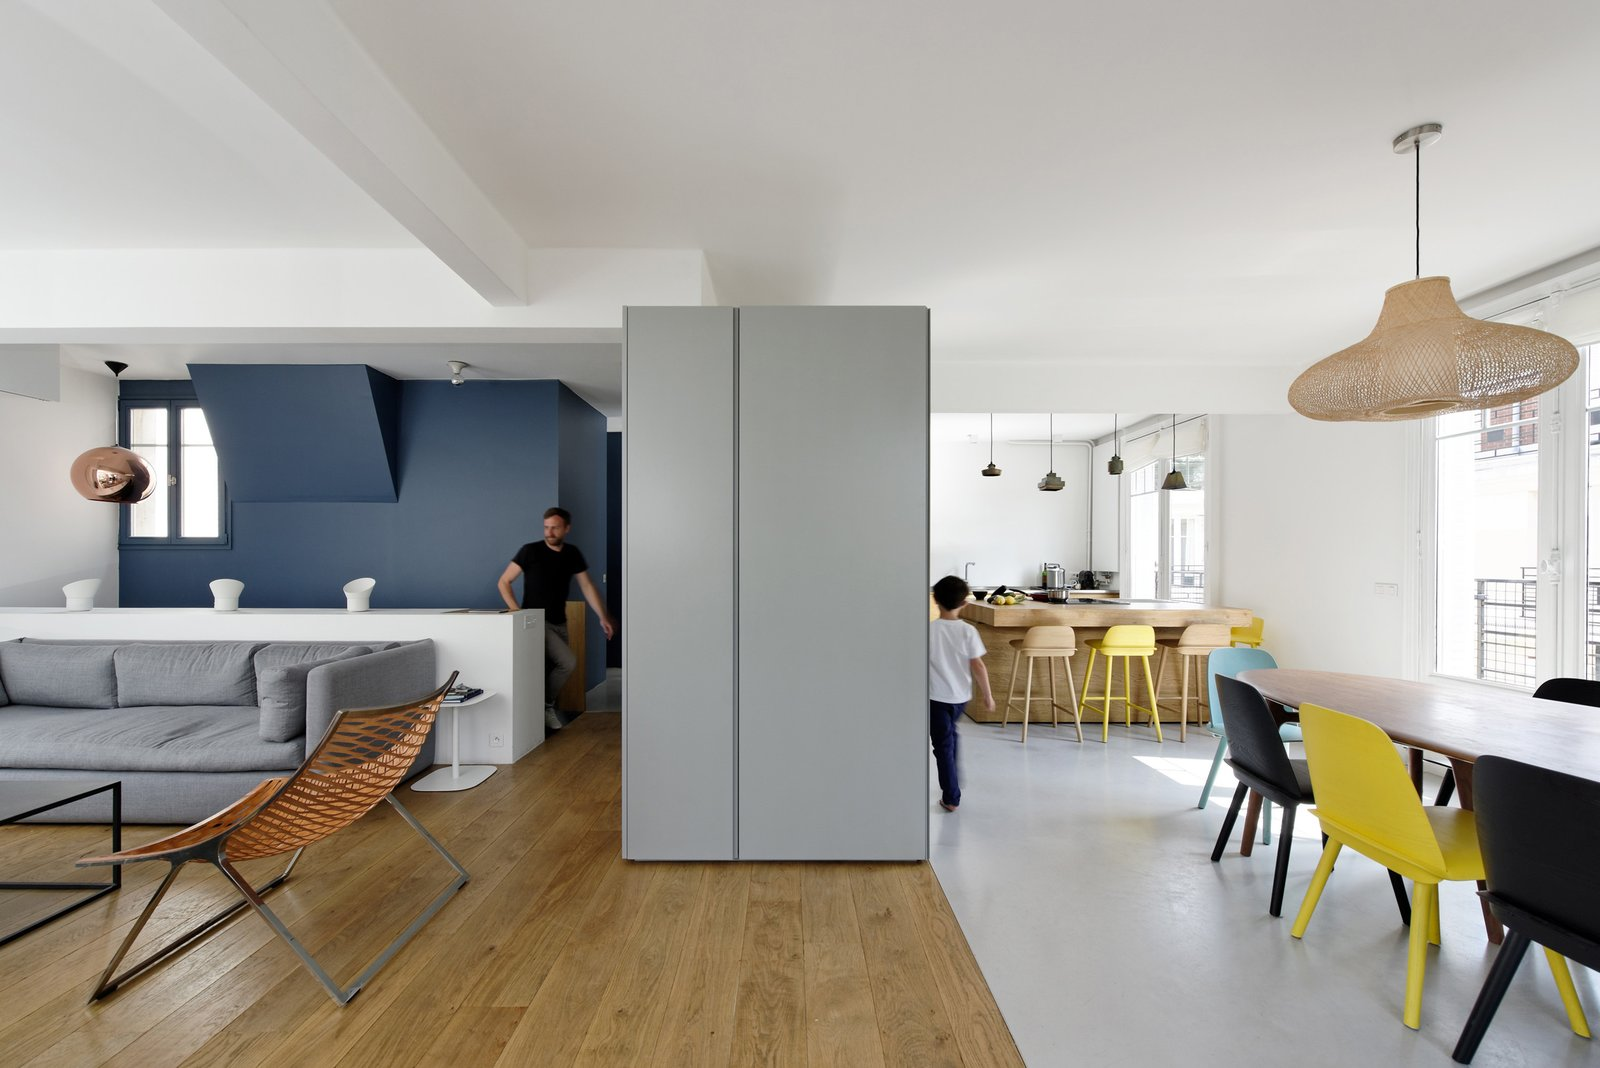 """""""The upper floor includes the entry, cloakroom, guest bathroom, kitchen, dining room, living room, and terrace,"""" Hammer says. """"In contrast to the lower floor and its separated rooms, the living area is composed as an open space with no walls."""" Nerd Chairs by David Geckeler for Muuto surround a handcrafted nutwood table in the dining room."""